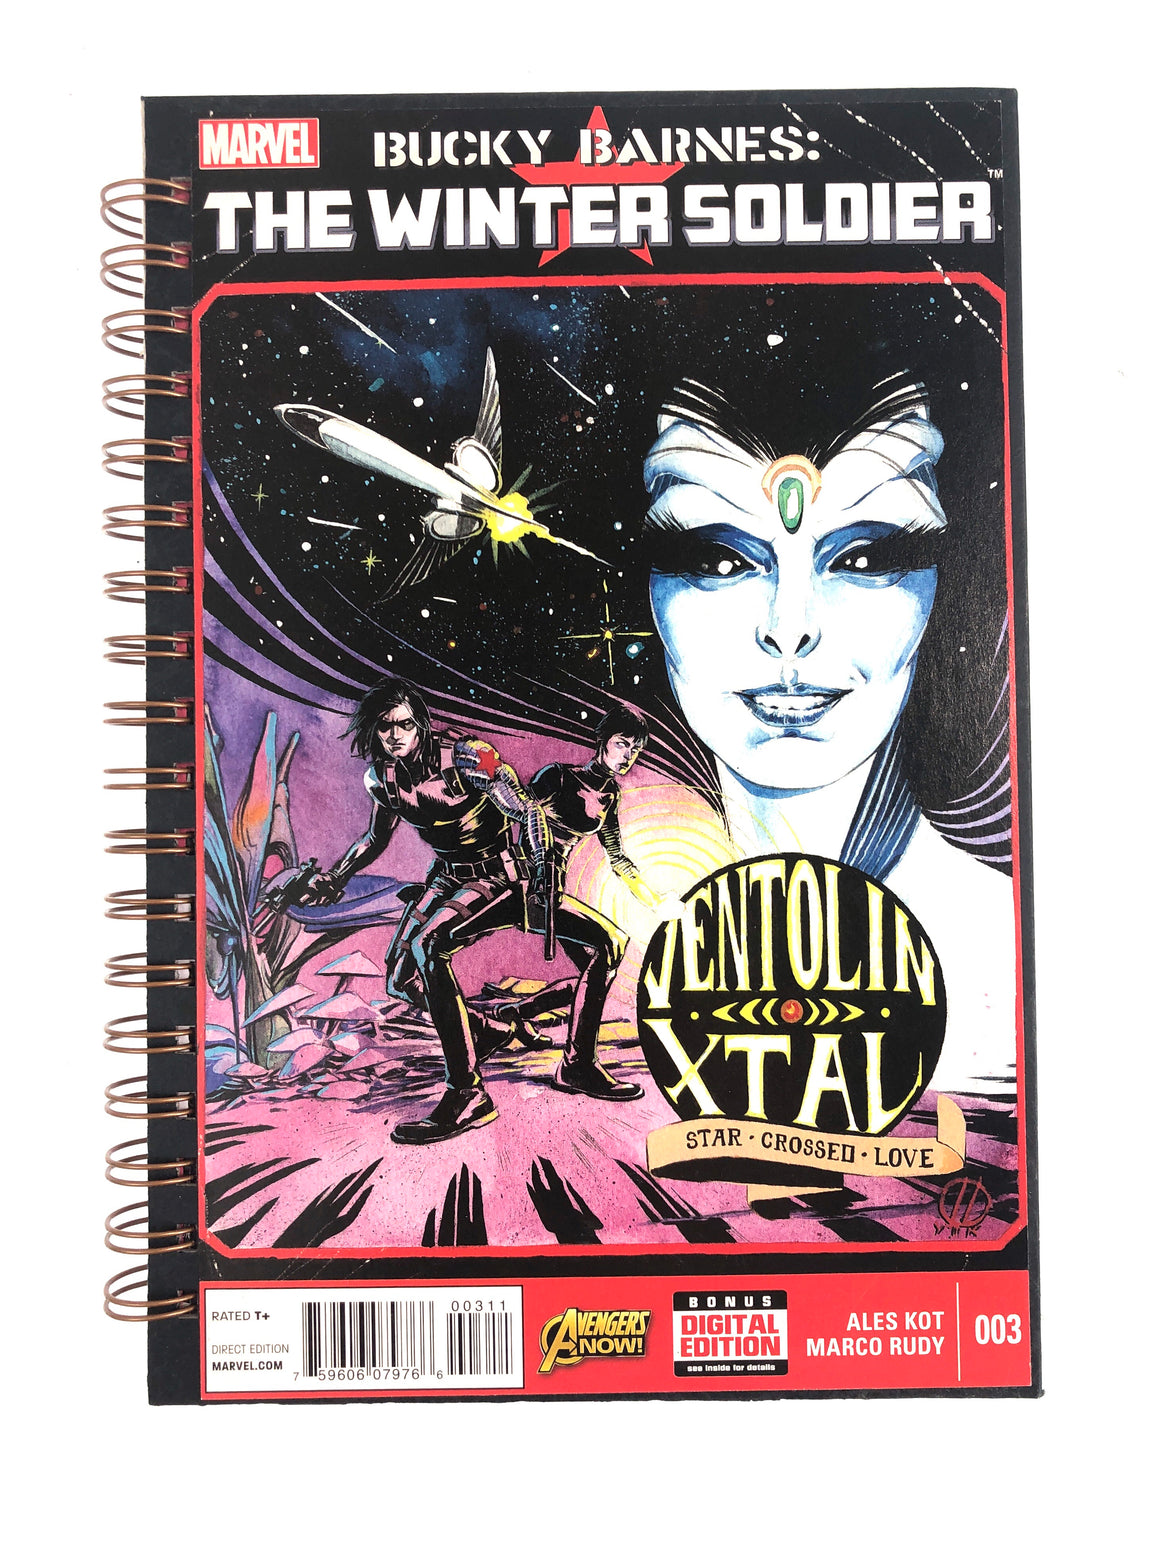 Bucky Barnes: The Winter Soldier #3 Comic Journal-Red Barn Collections